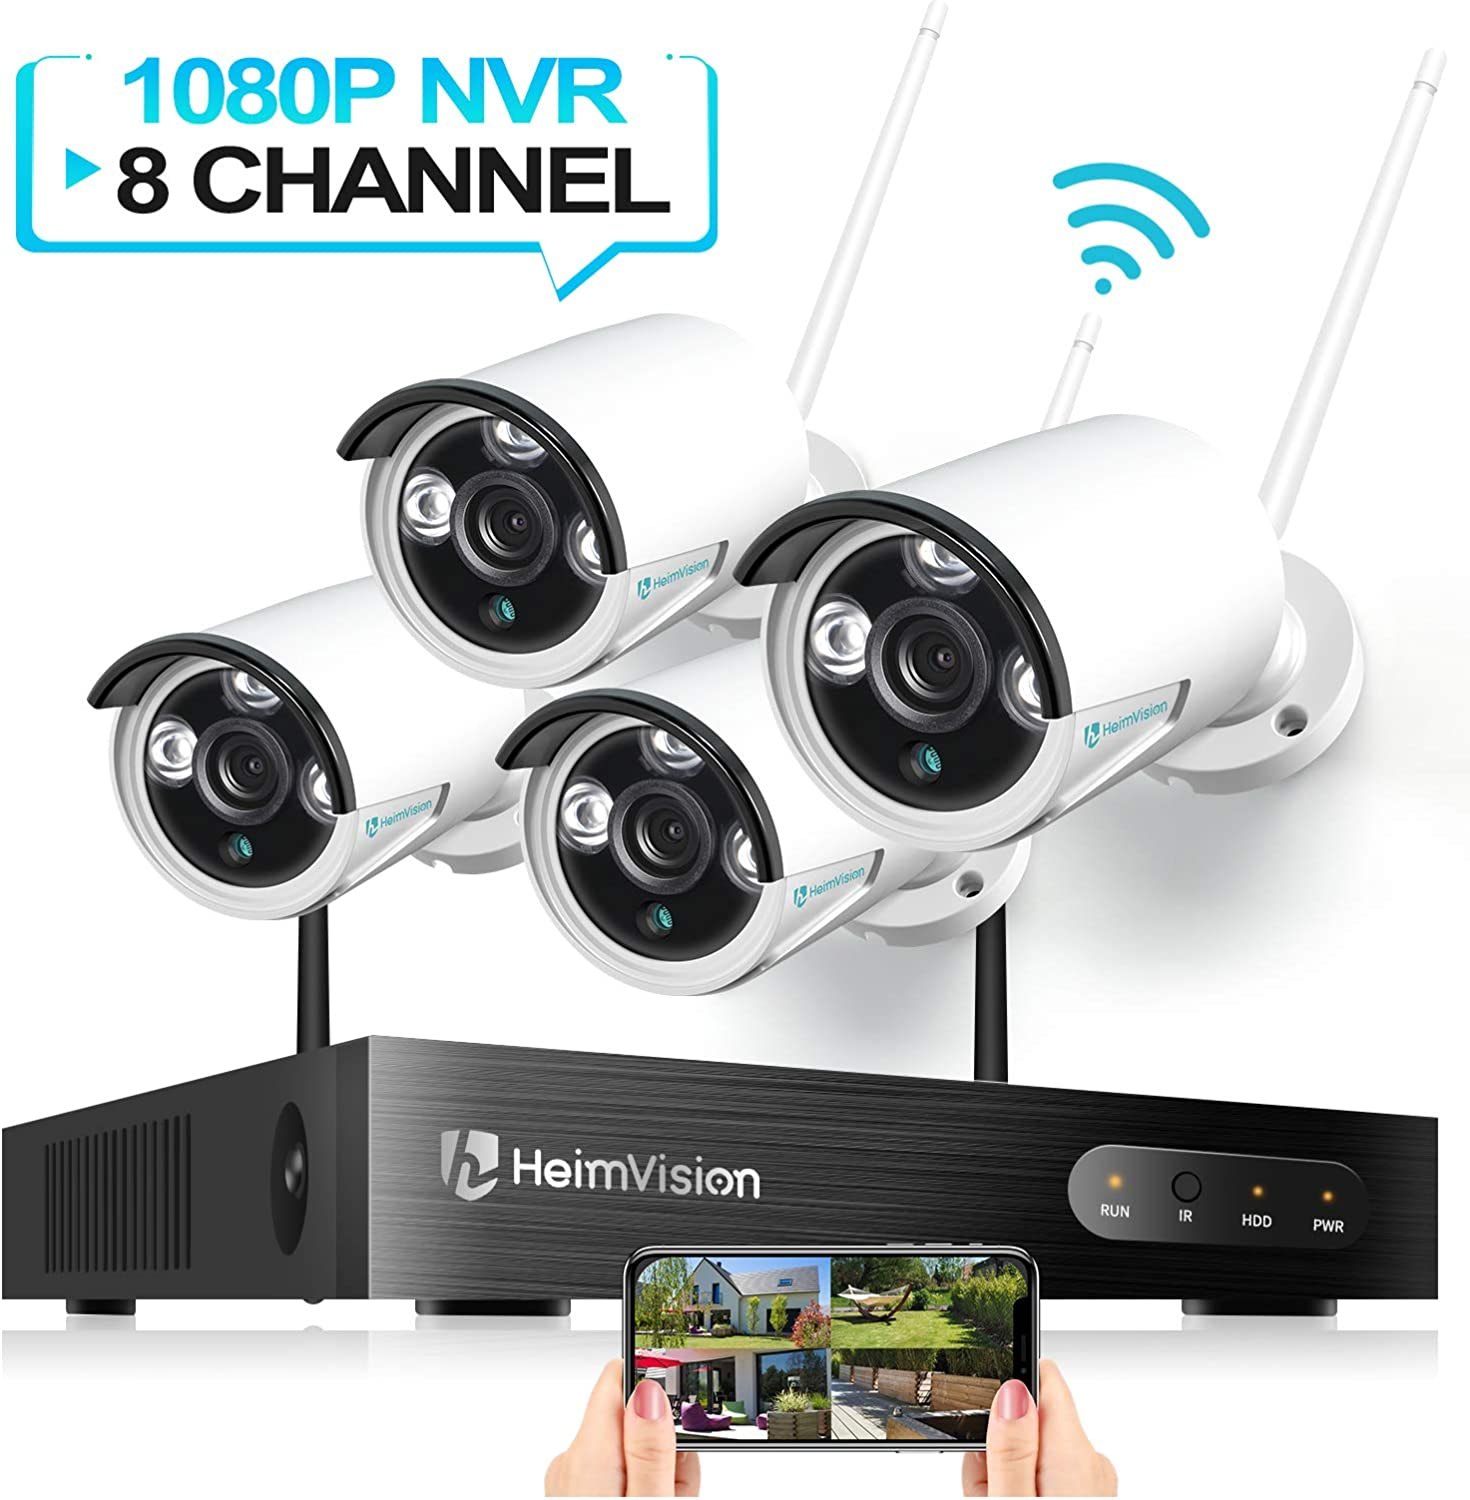 HeimVision HM241 WiFi Security Camera System, 8CH 1080P NVR 4Pcs 960P Outdoor Indoor WiFi Surveillance Cameras with Night Vision, Weatherproof, Motion Detection, Remote Monitoring, No Hard Drive